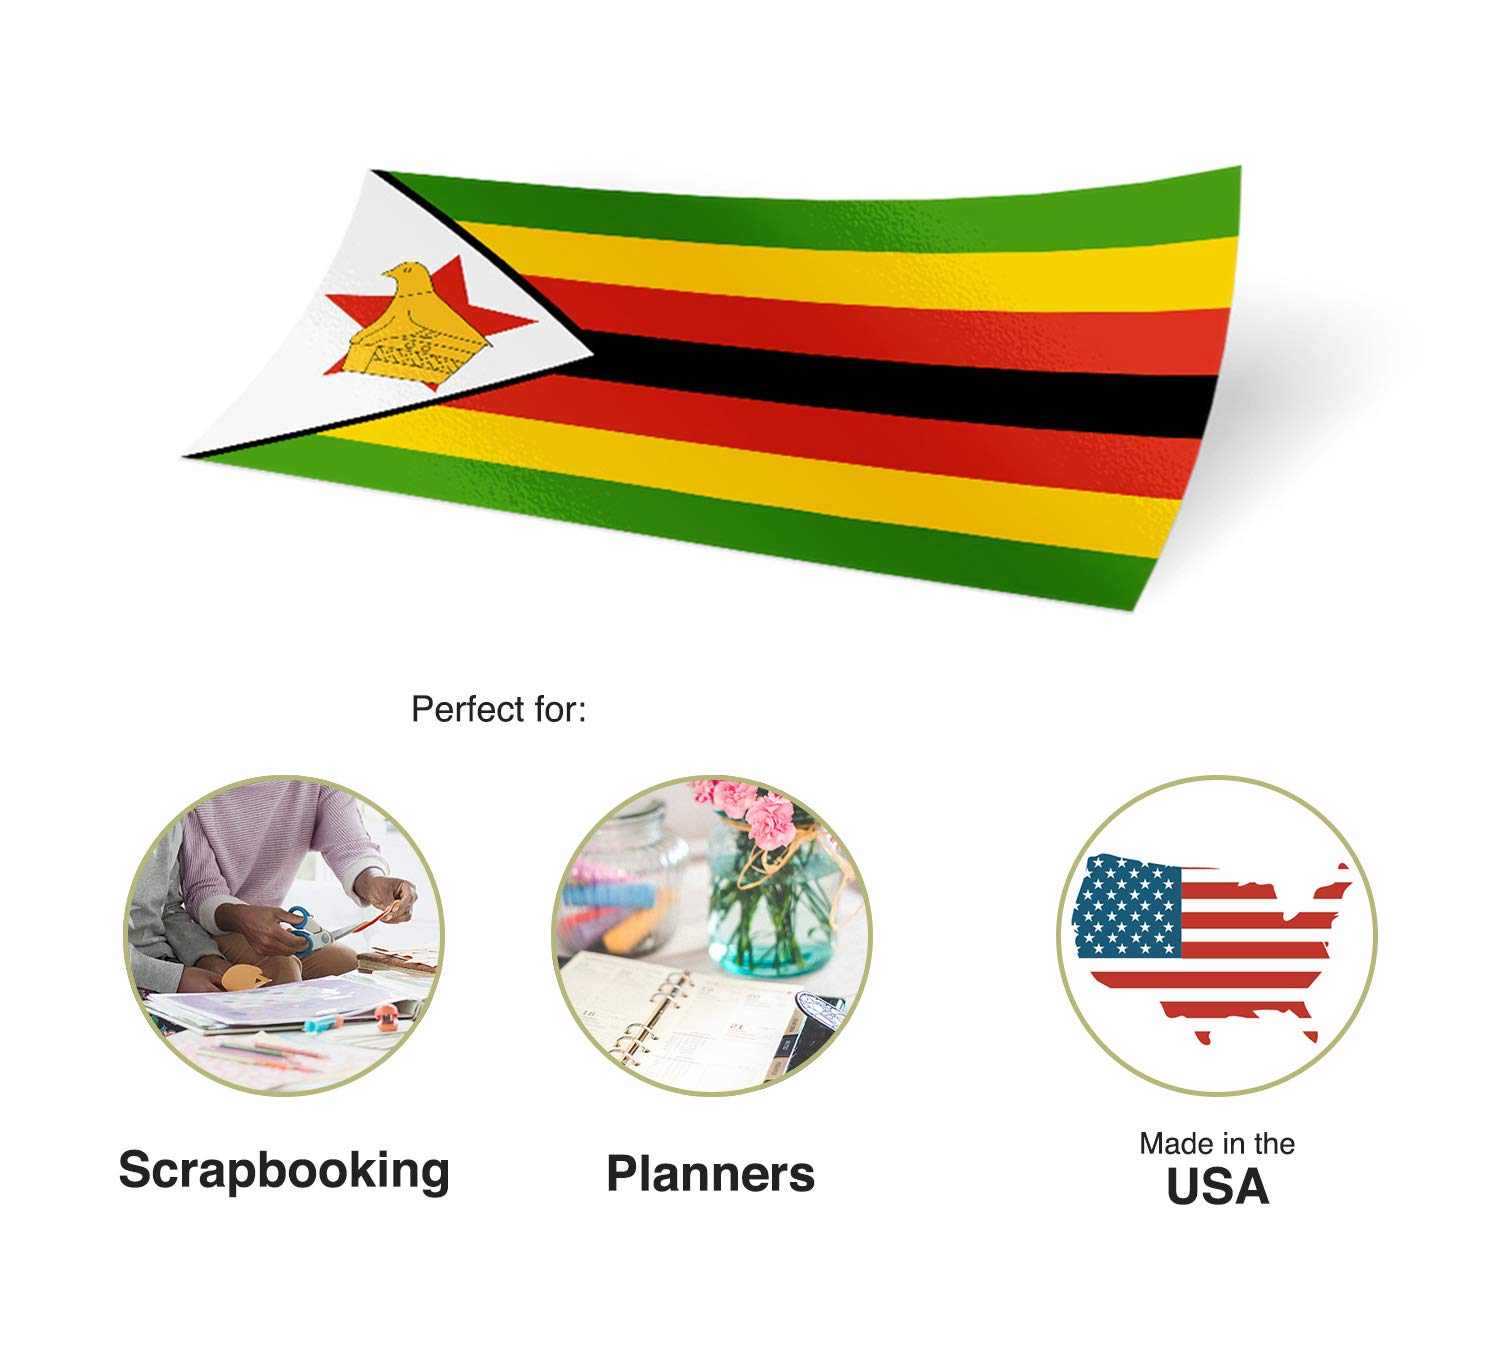 Desert Cactus Zimbabwe Country Flag Sticker Decal Variety Size Pack 8 Total Pieces Kids Logo Scrapbook Car Vinyl Window Bumper Laptop V